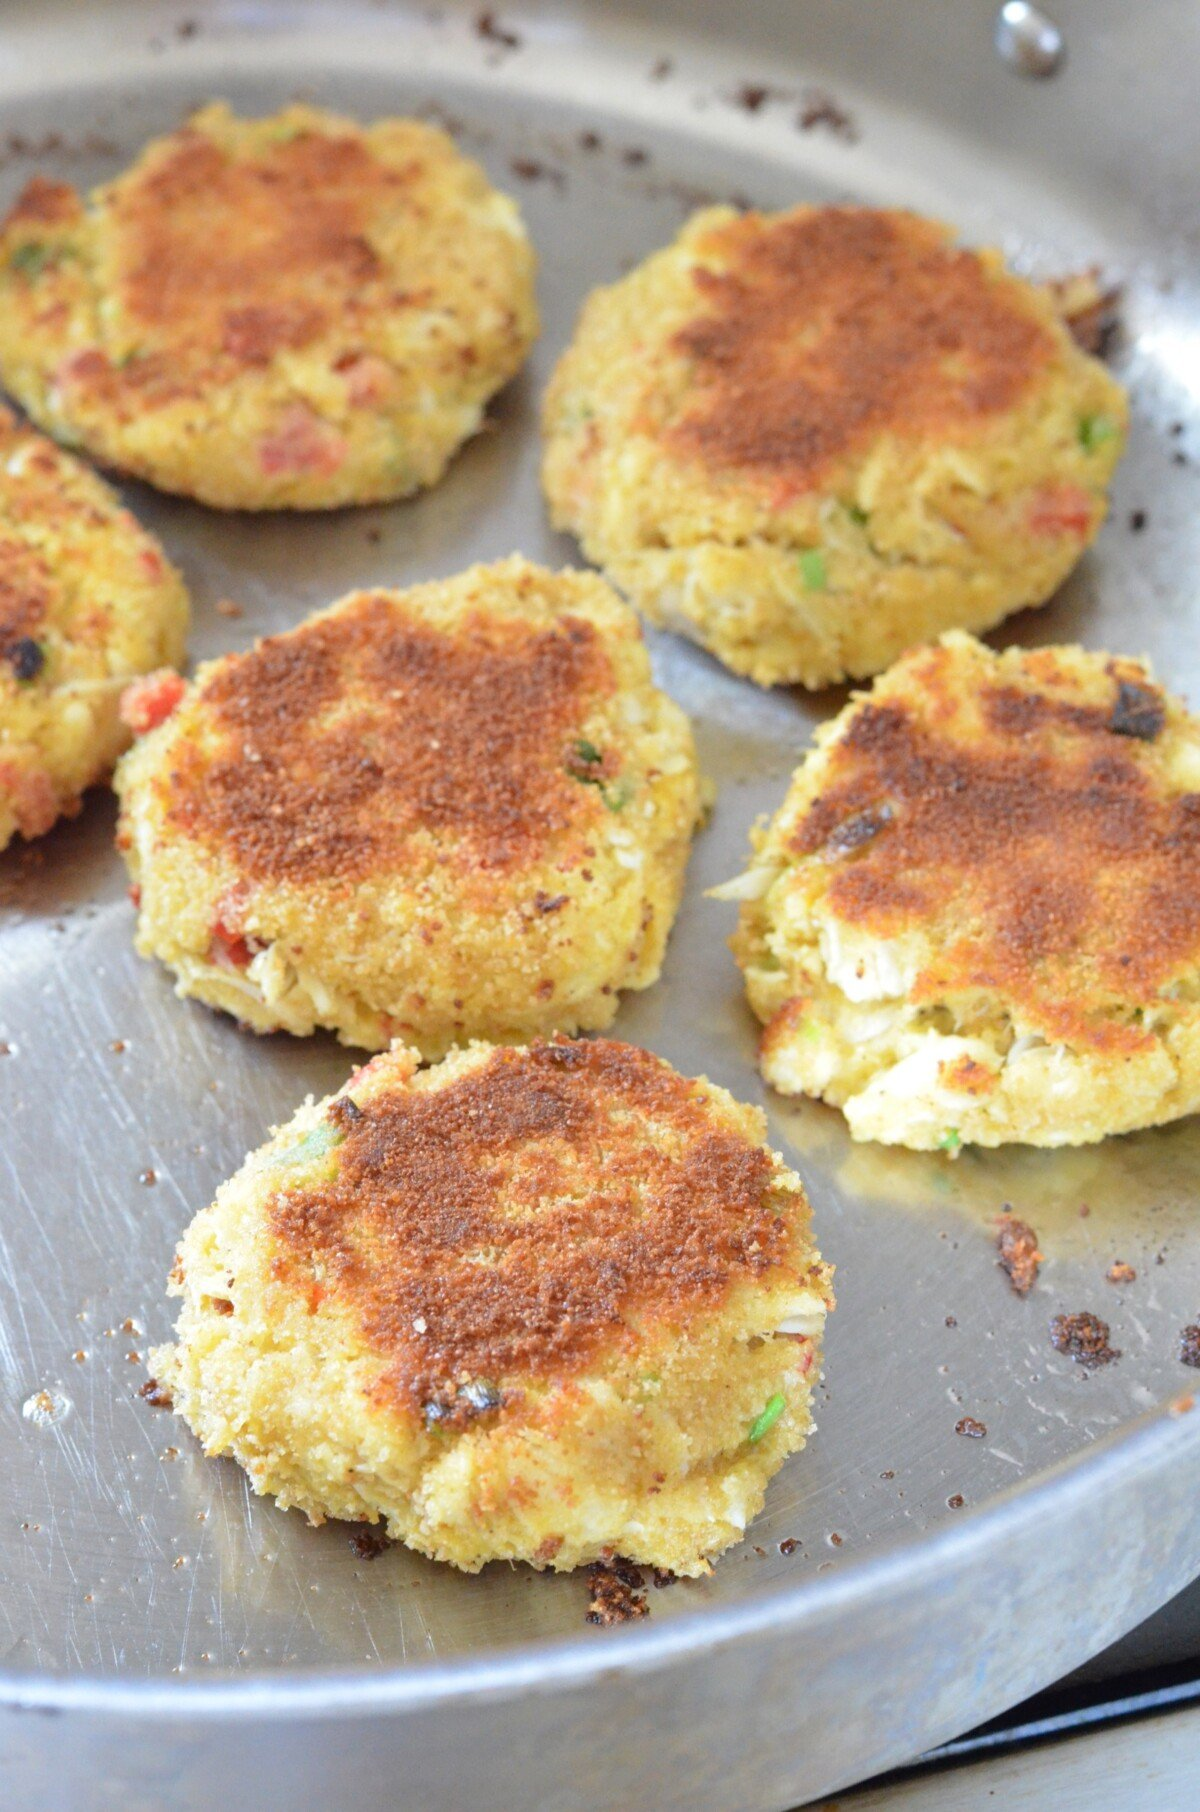 Crab Cakes being made in a frying pan.